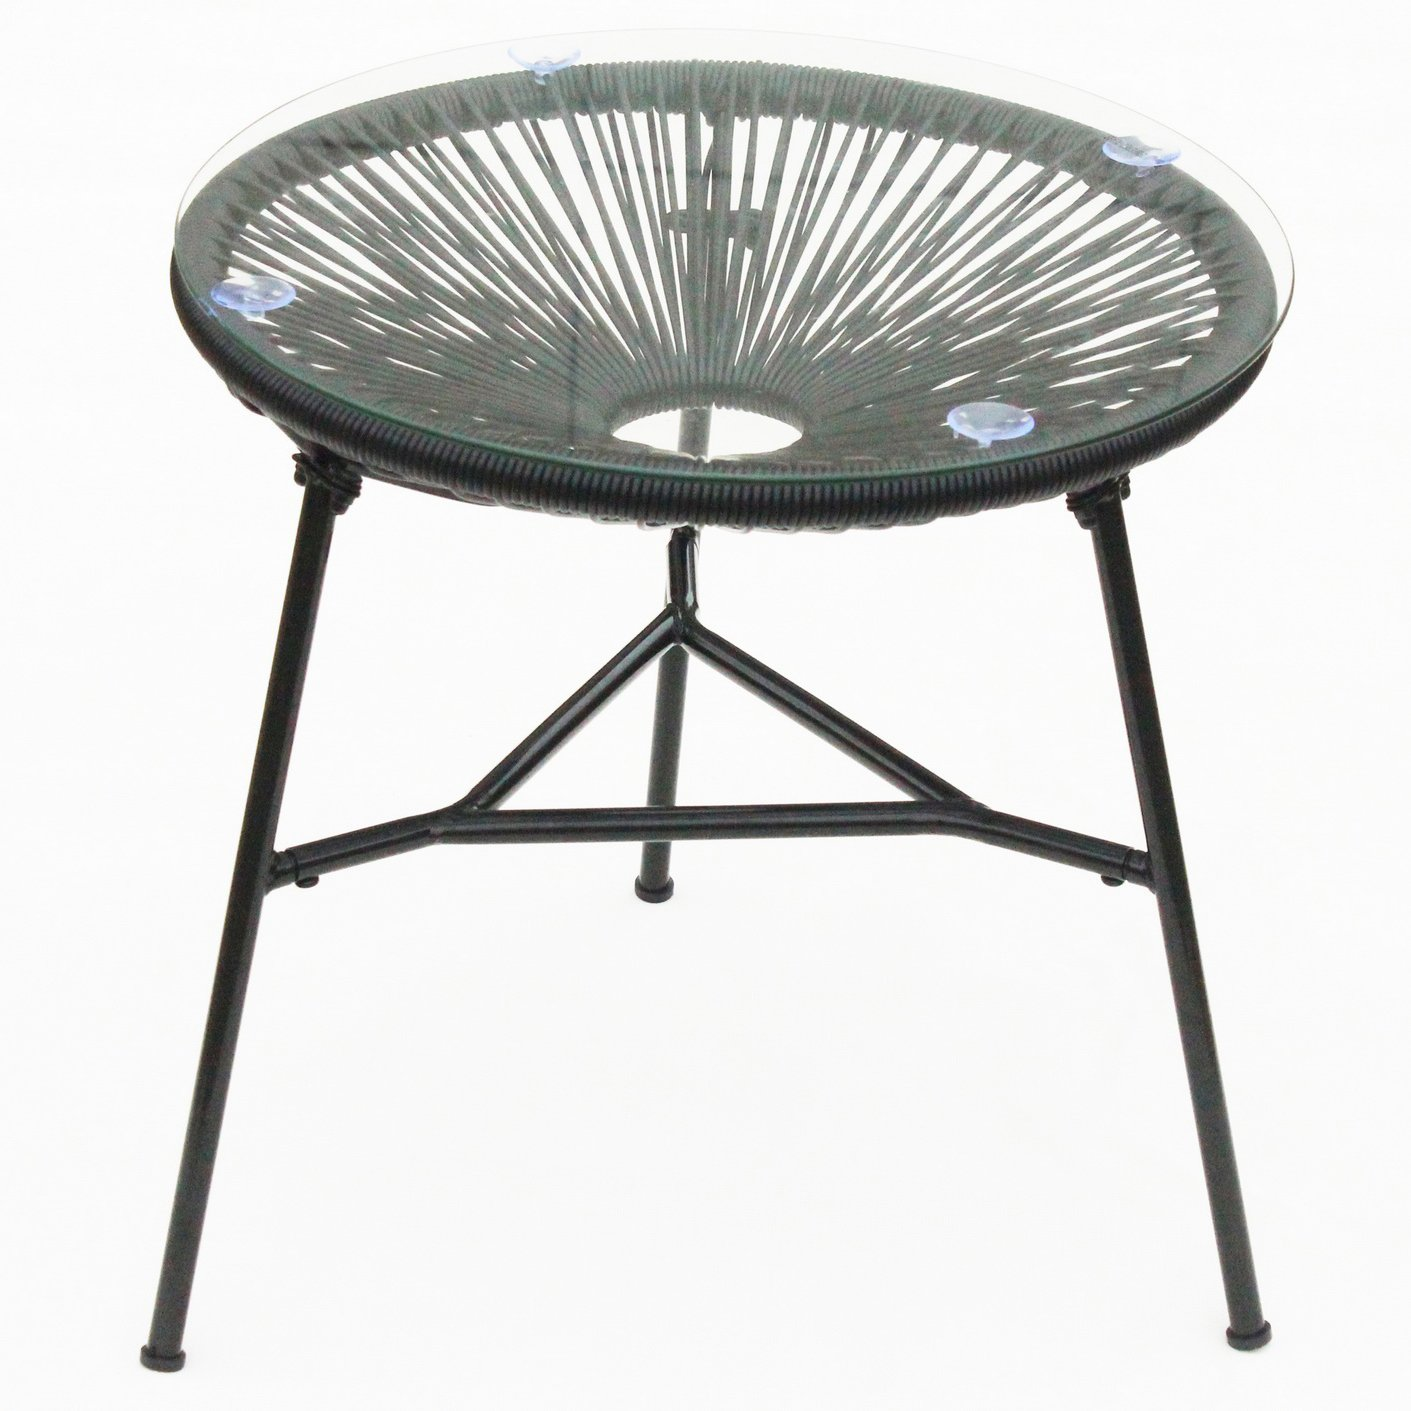 New Funky Modern Kids String Moon Chair with Steel tube frame legs Outdoor use